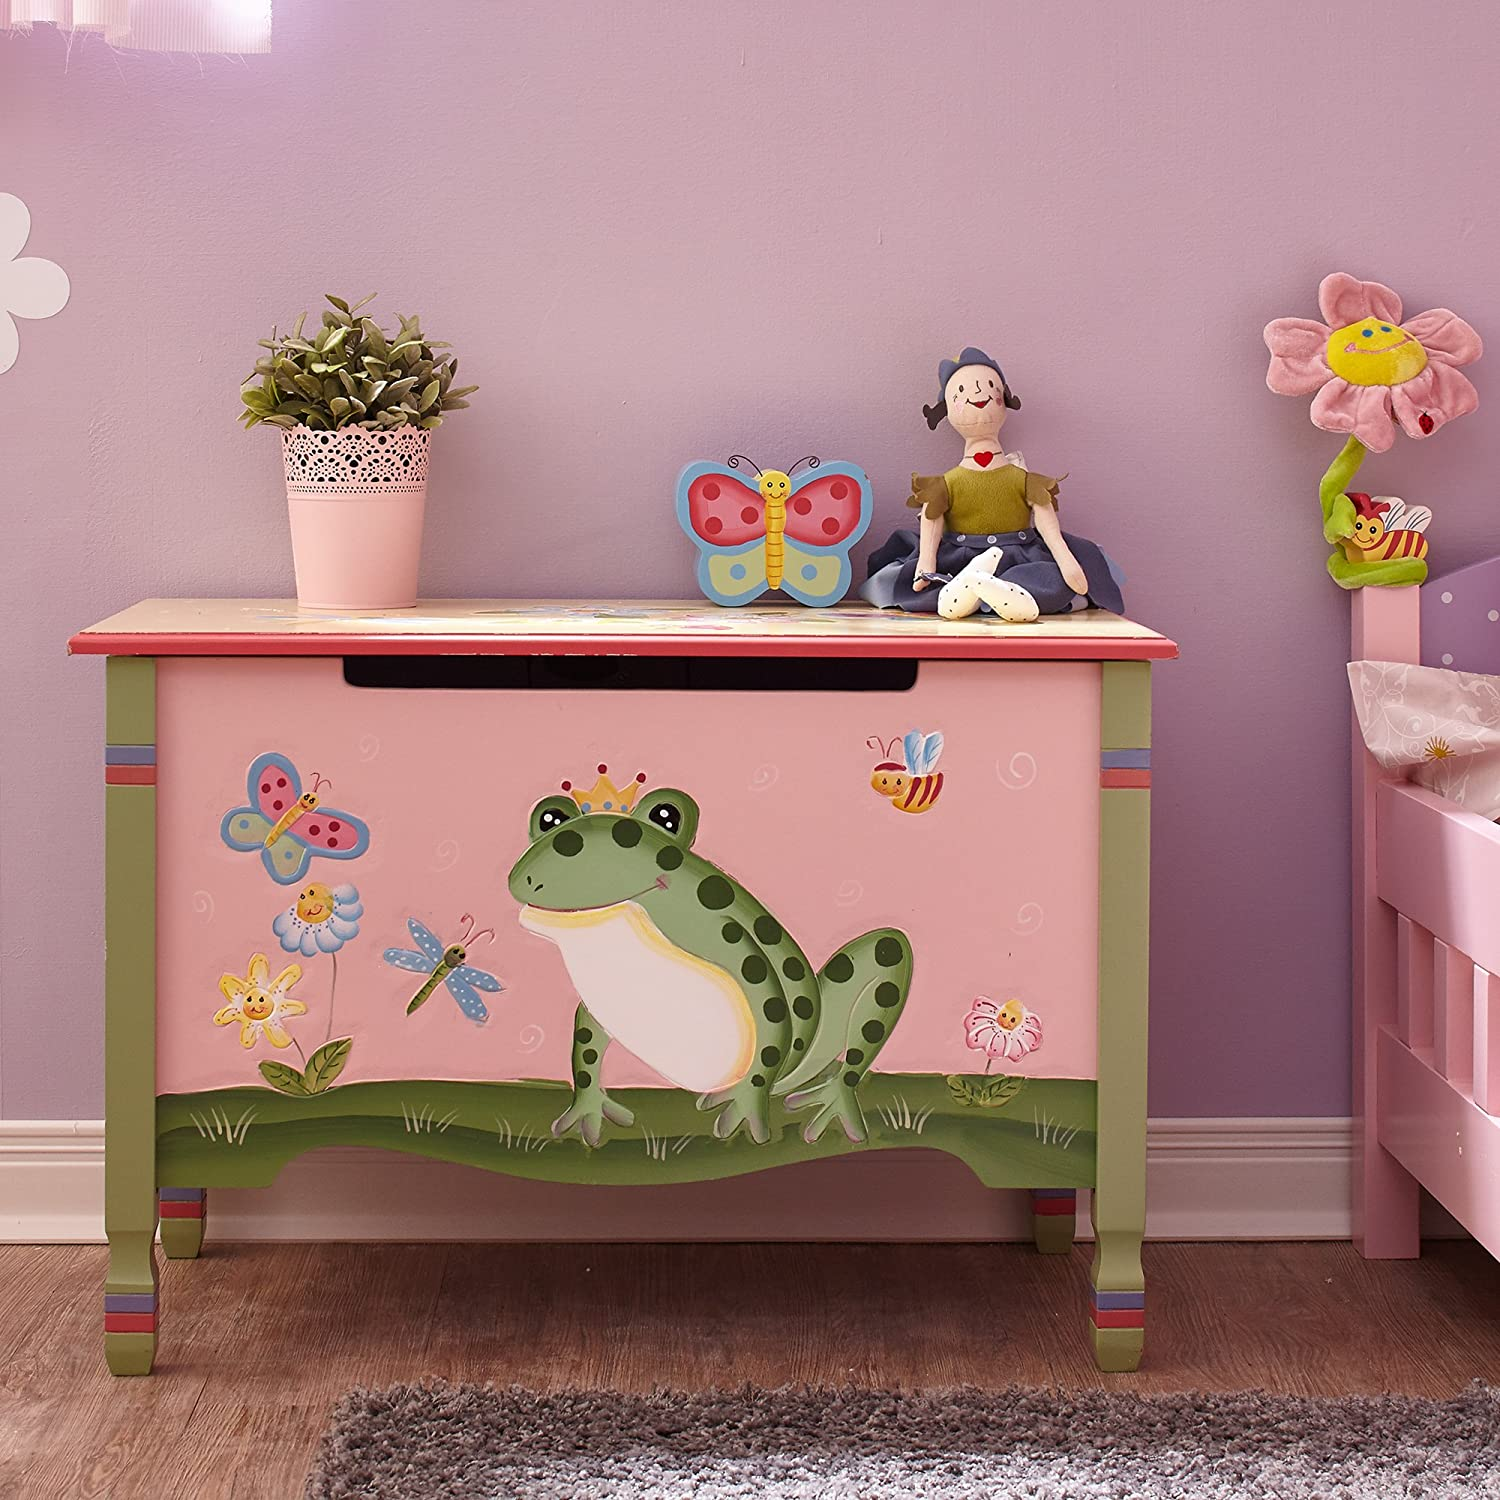 Amazon.com: Fantasy Fields   Magic Garden Thematic Kids Wooden Toy Chest  With Safety Hinges | Imagination Inspiring Hand Crafted U0026 Hand Painted  Details ...